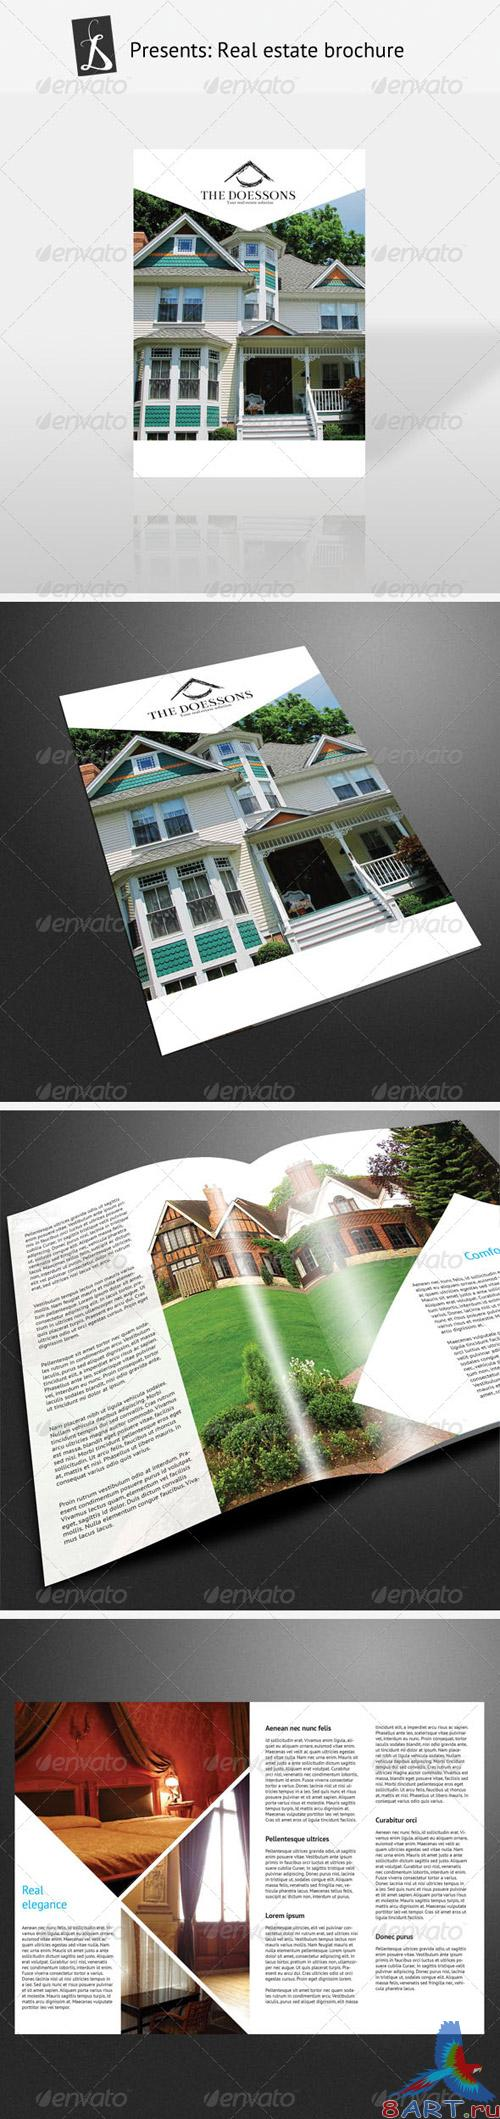 Real Estate Brochure - GraphicRiver